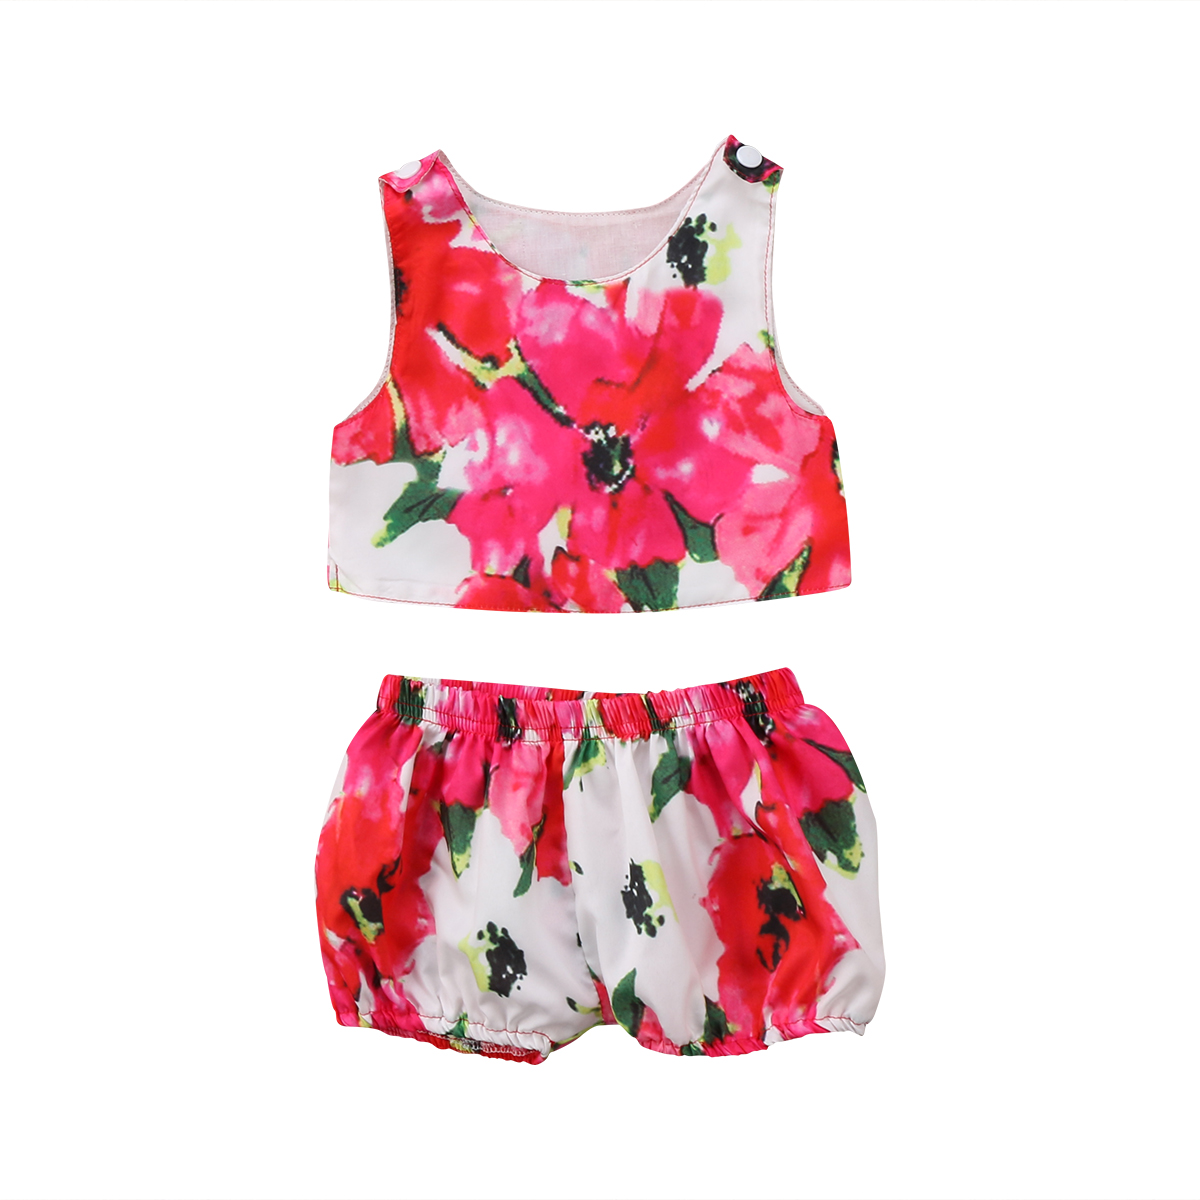 Floral 2PCS Newborn Toddler Baby Girls Sleeveless Tank T-shirt Tops+ Floral Pants Outfit